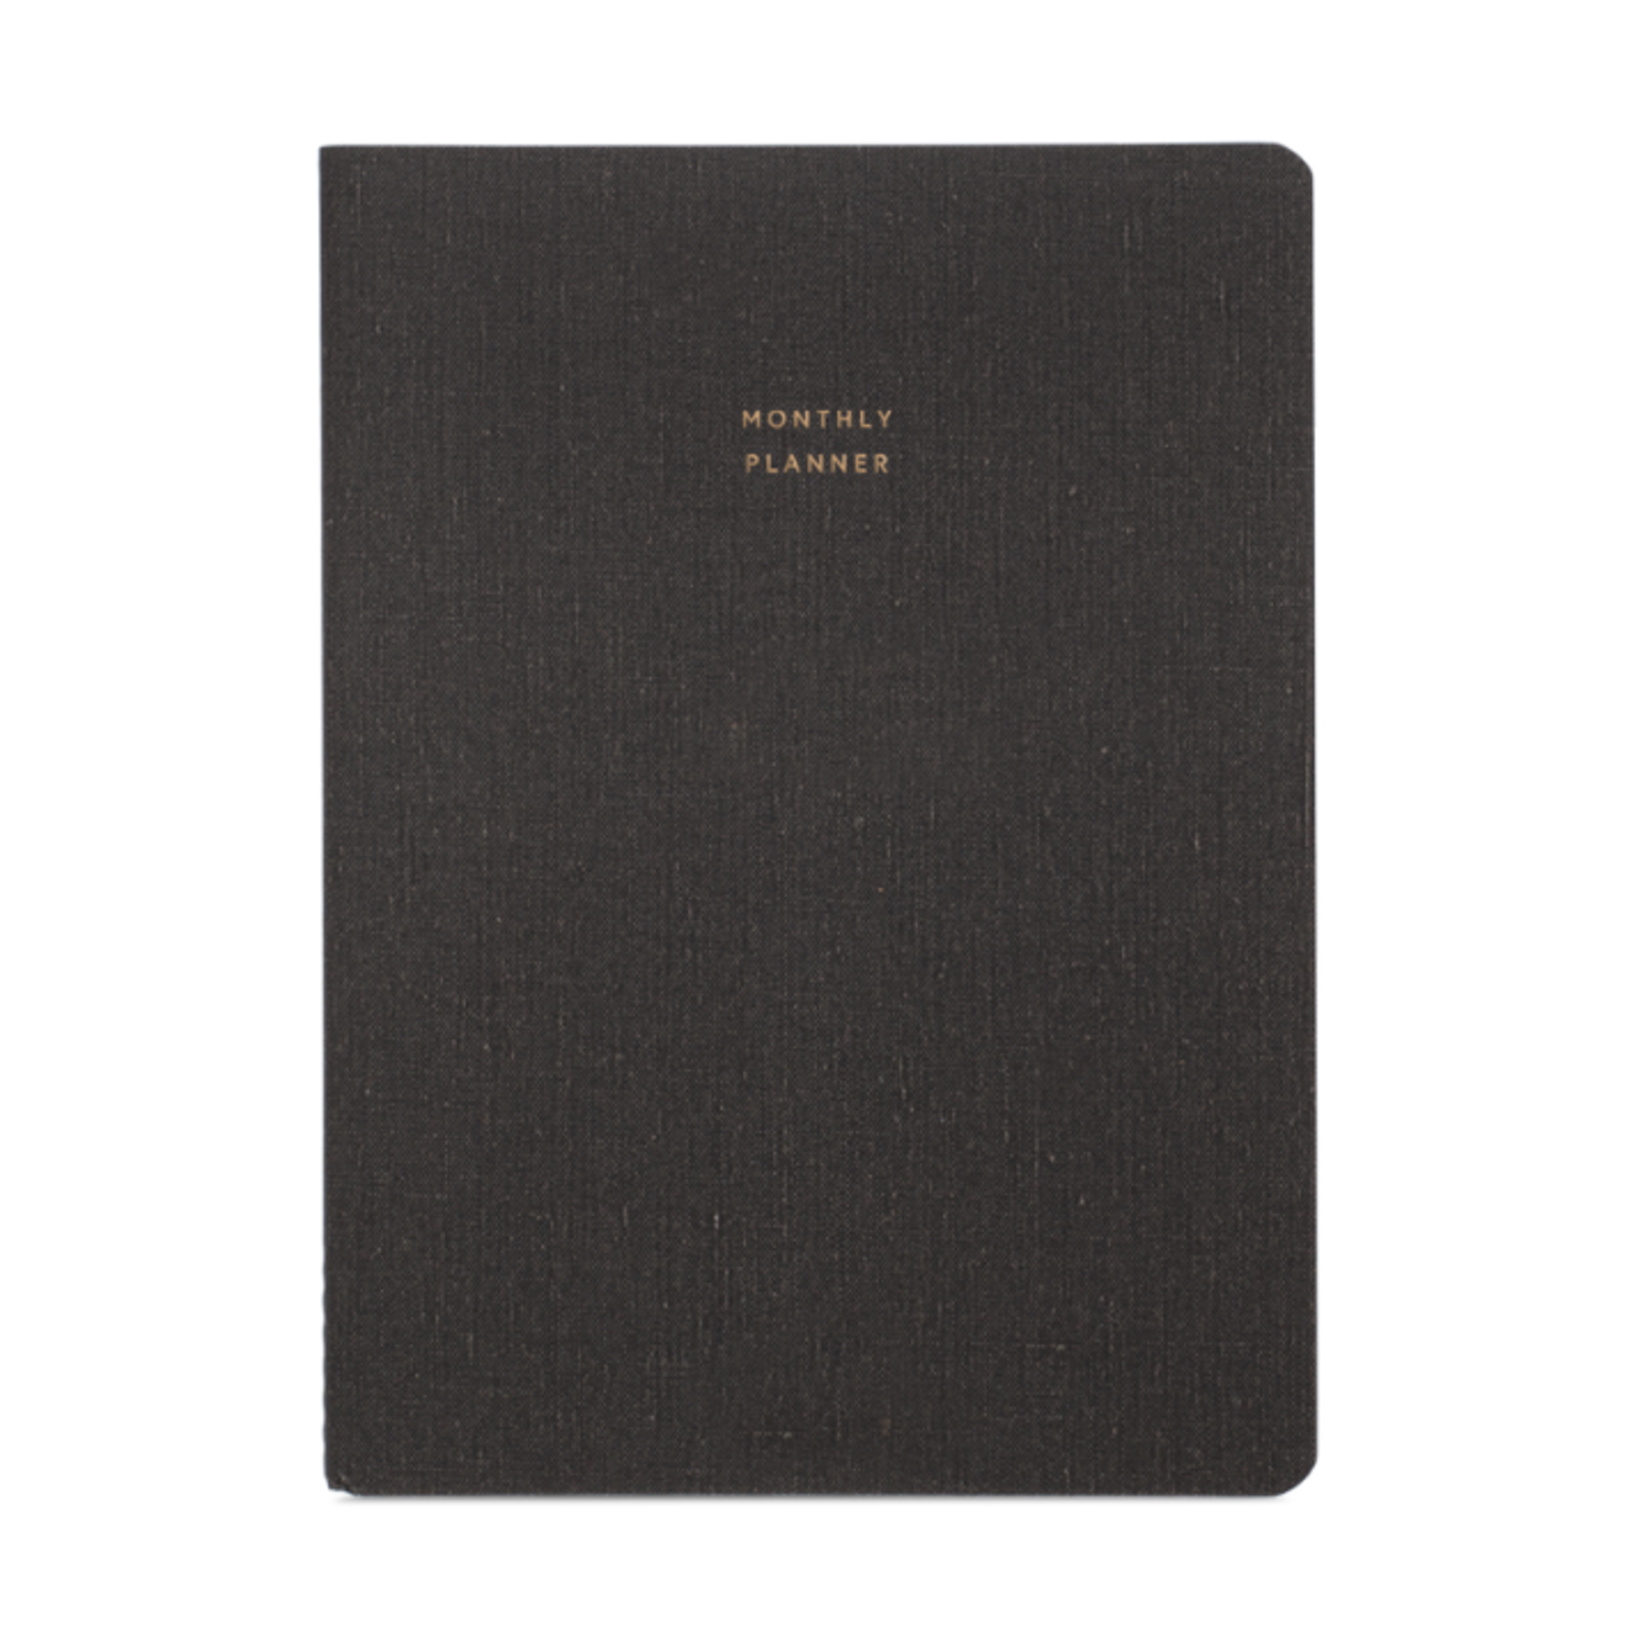 appointed appointed - monthly planner - large